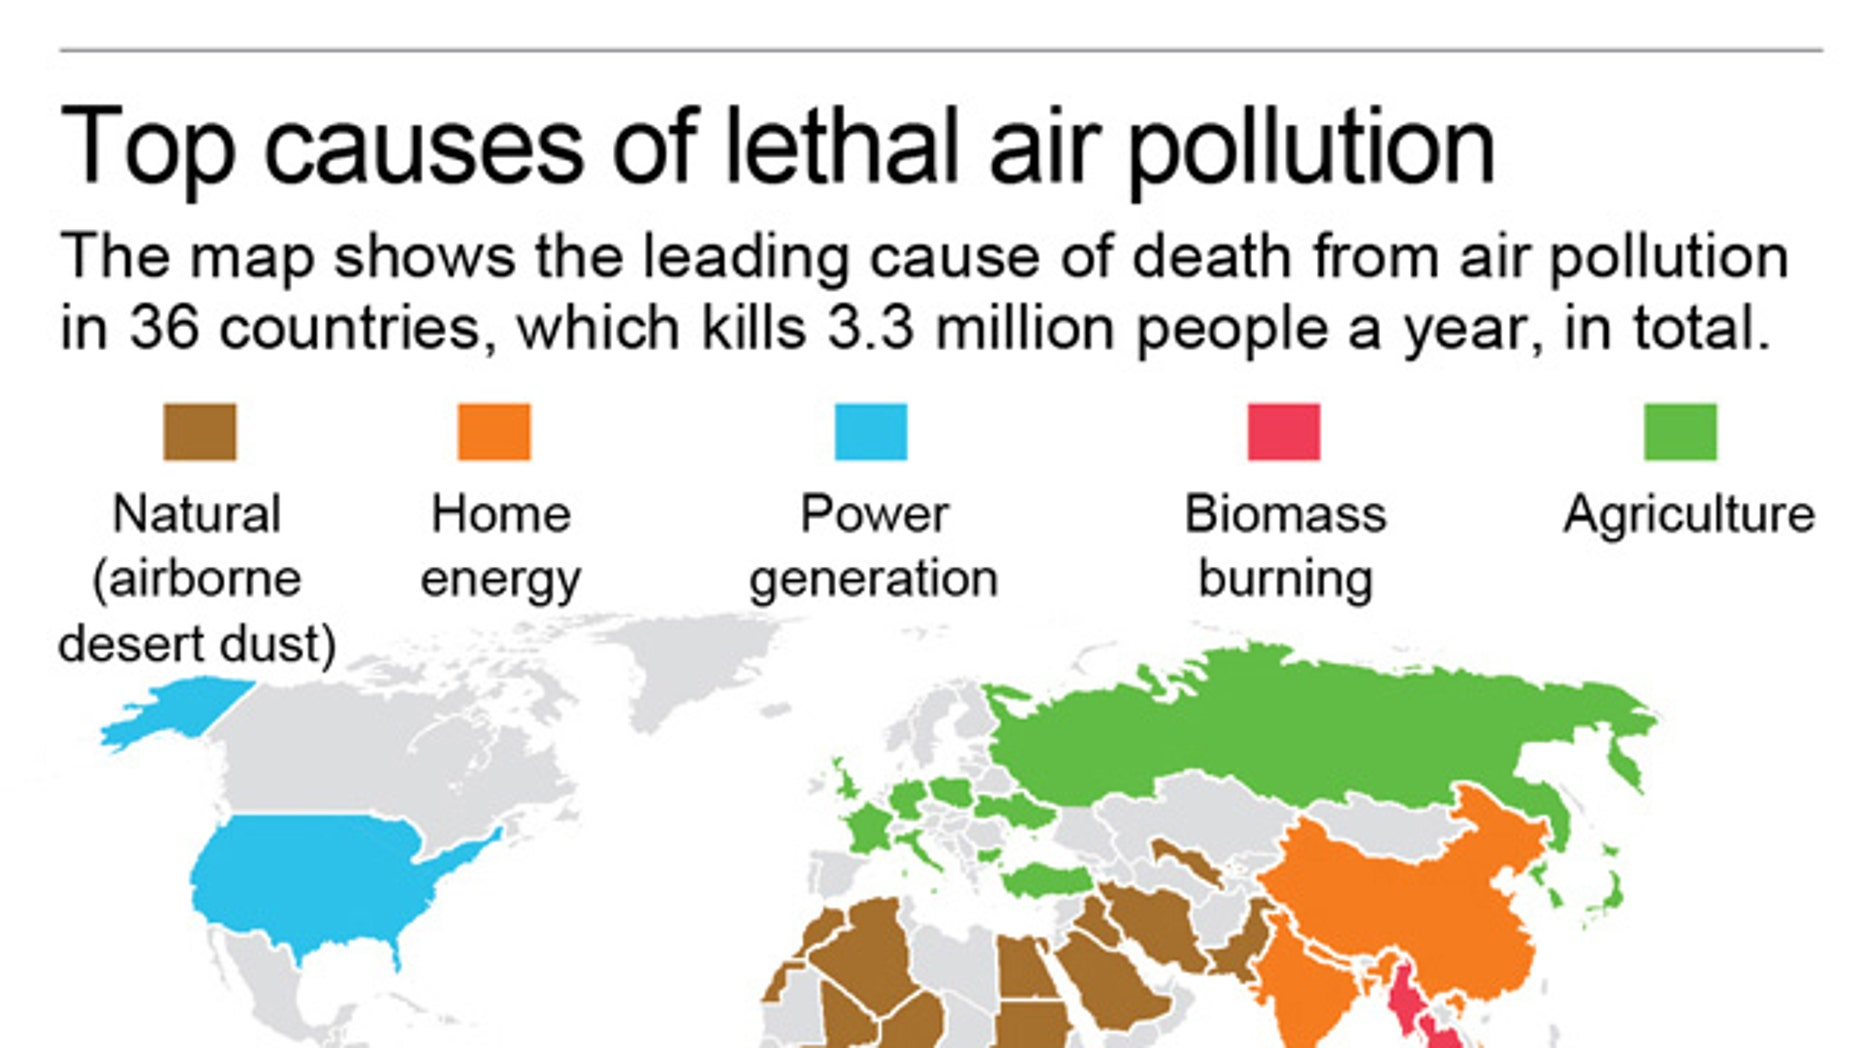 The map shows the single leading cause of death from air pollution in 36 countries.